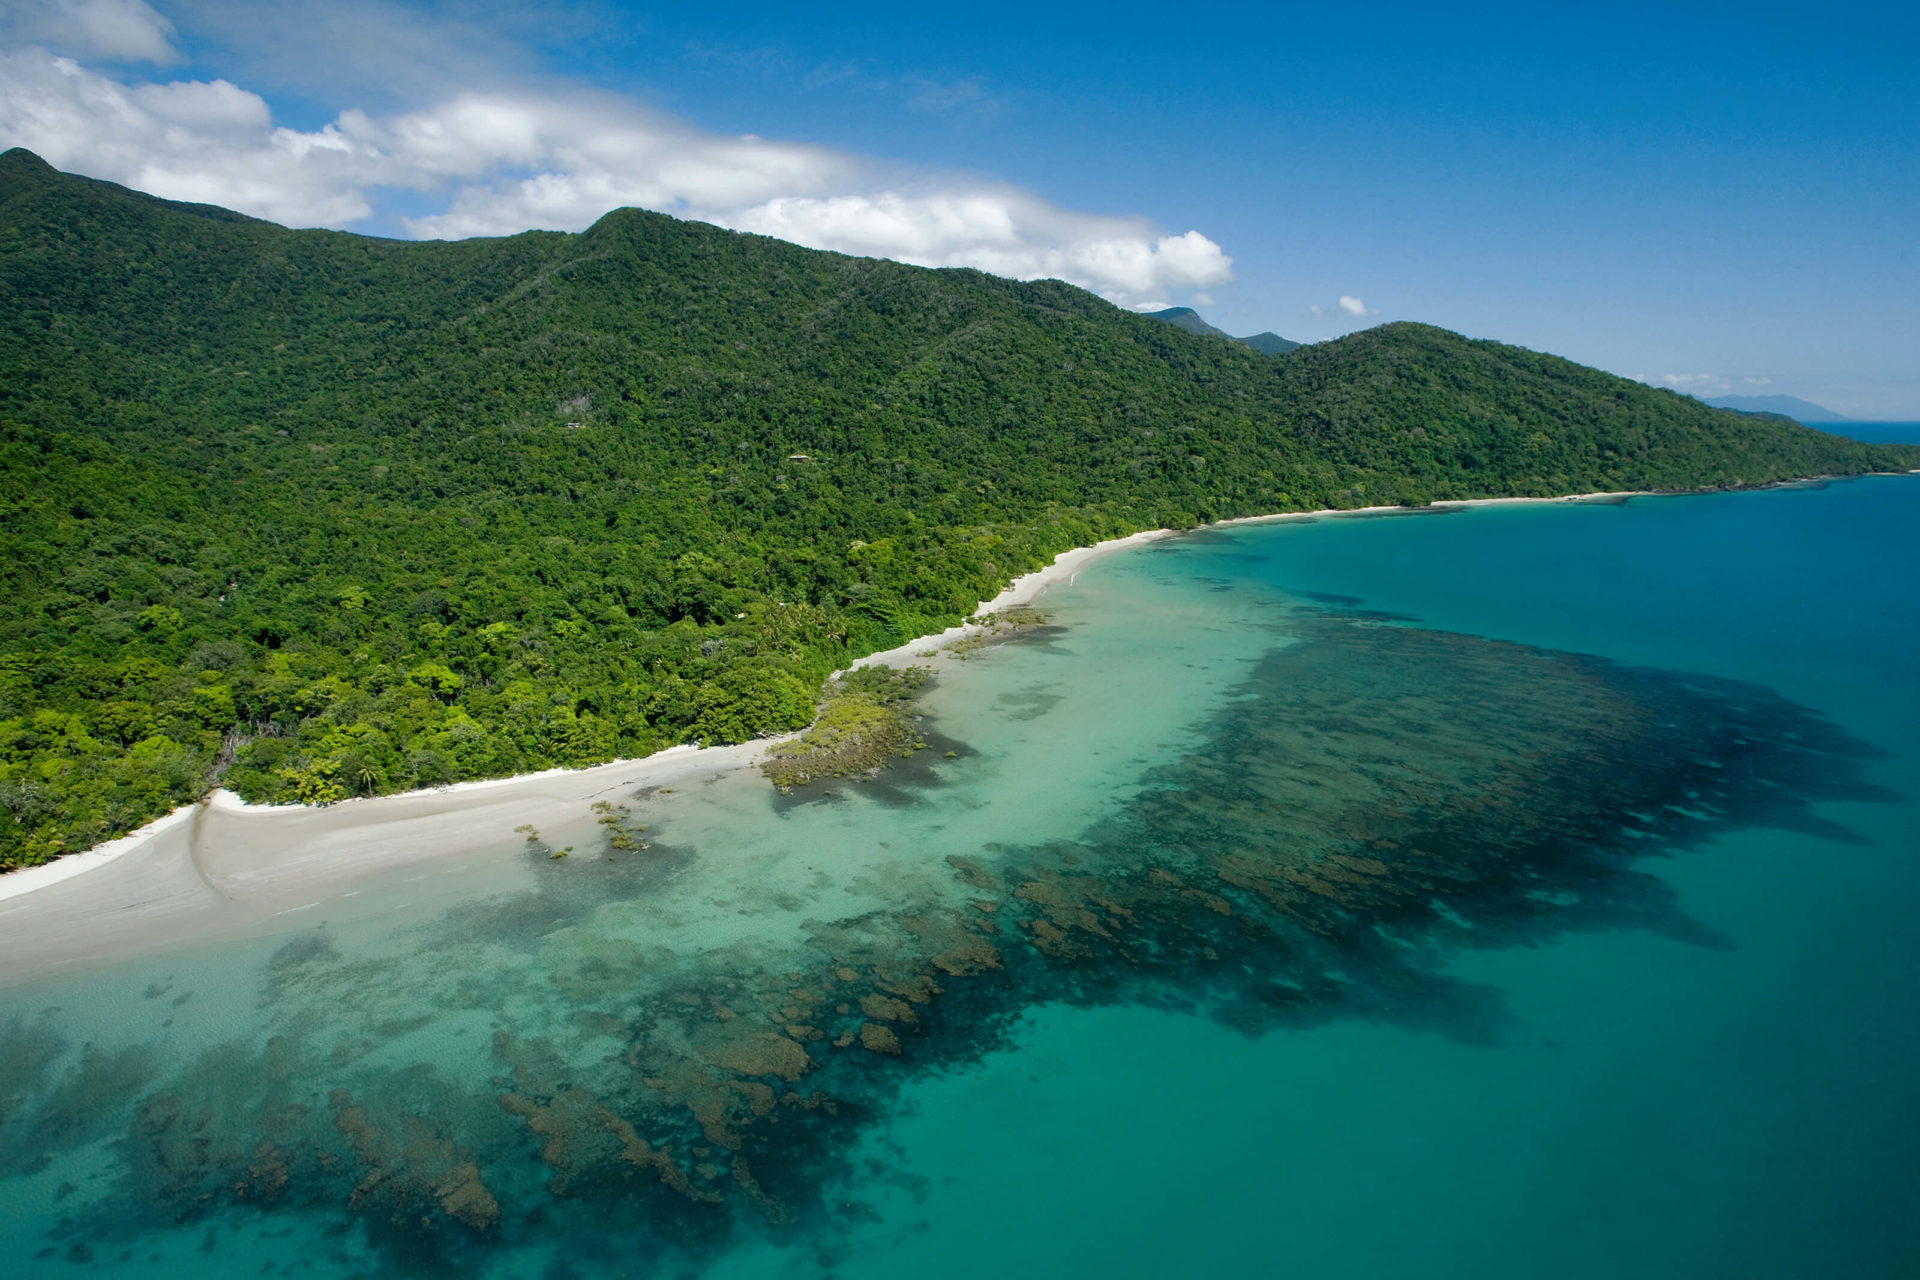 Cape Trib Connections Day Tour